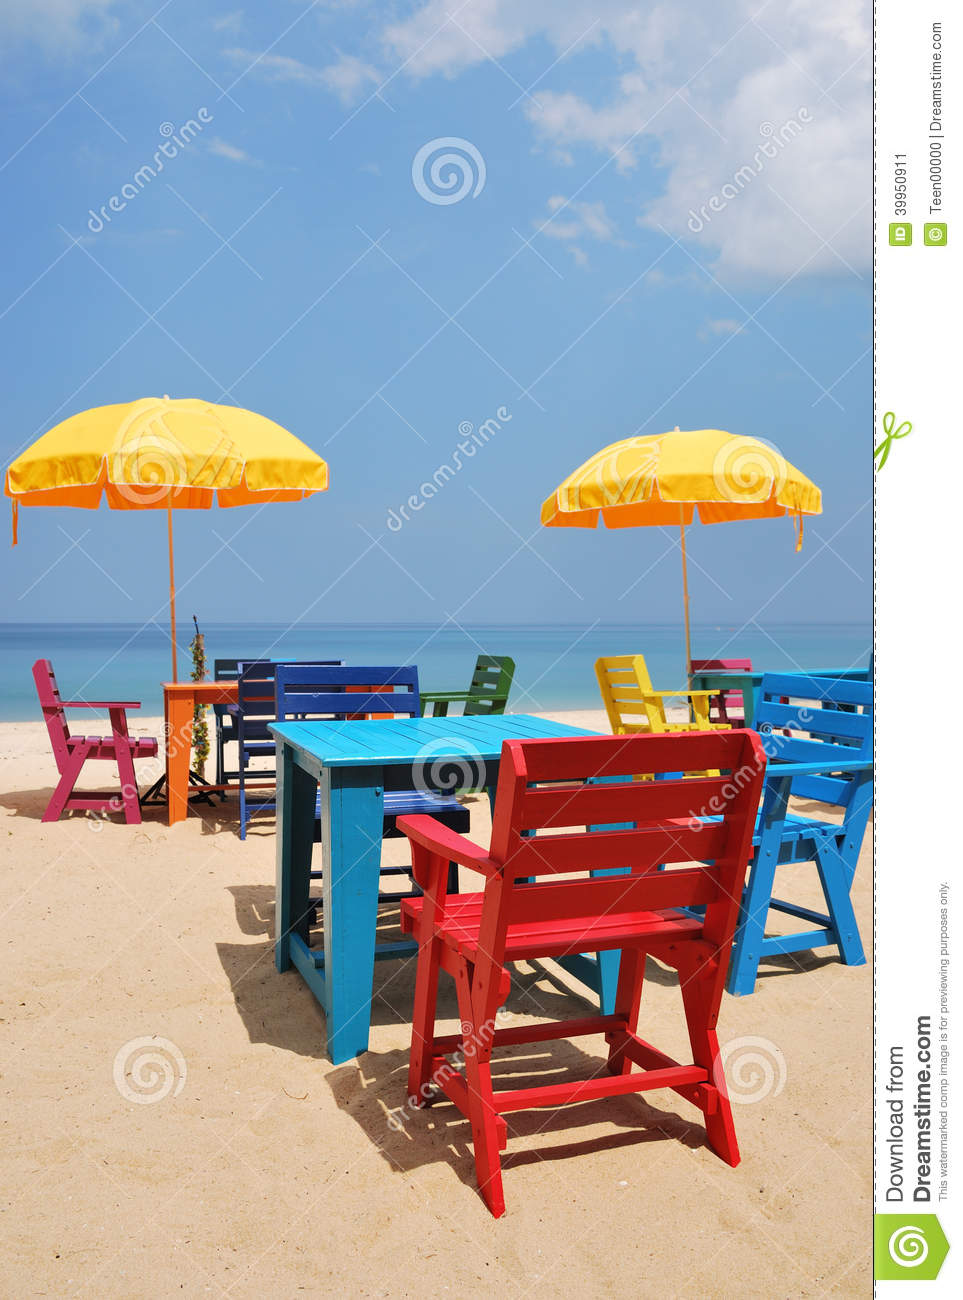 Colorful Chair And Table With Yellow Umbrella On The Beach